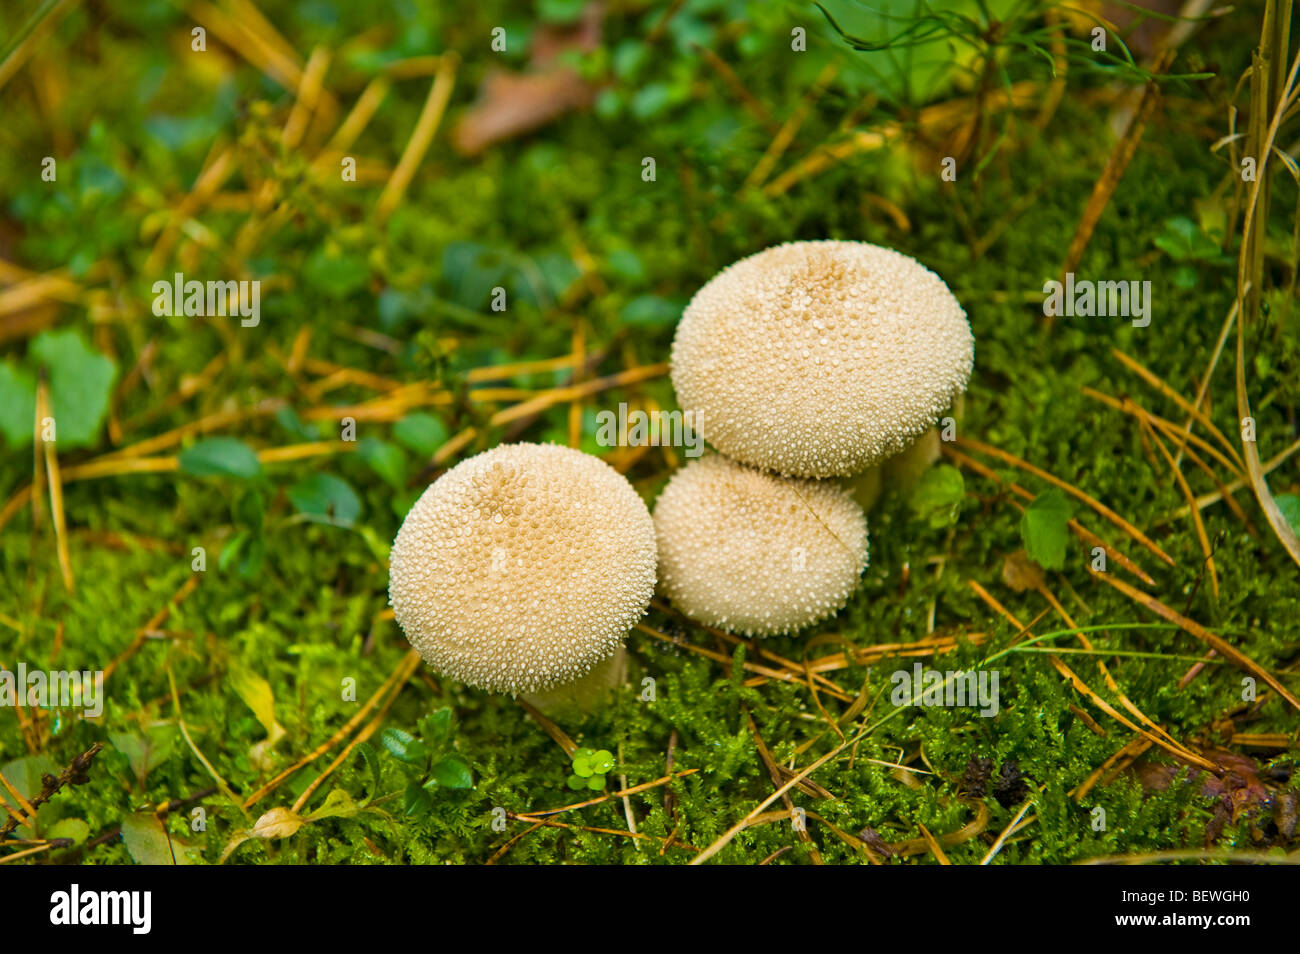 mushroom on meadow bovist funghi fungus germany forest europe 3 three nature natural food edible eat eatable moss - Stock Image